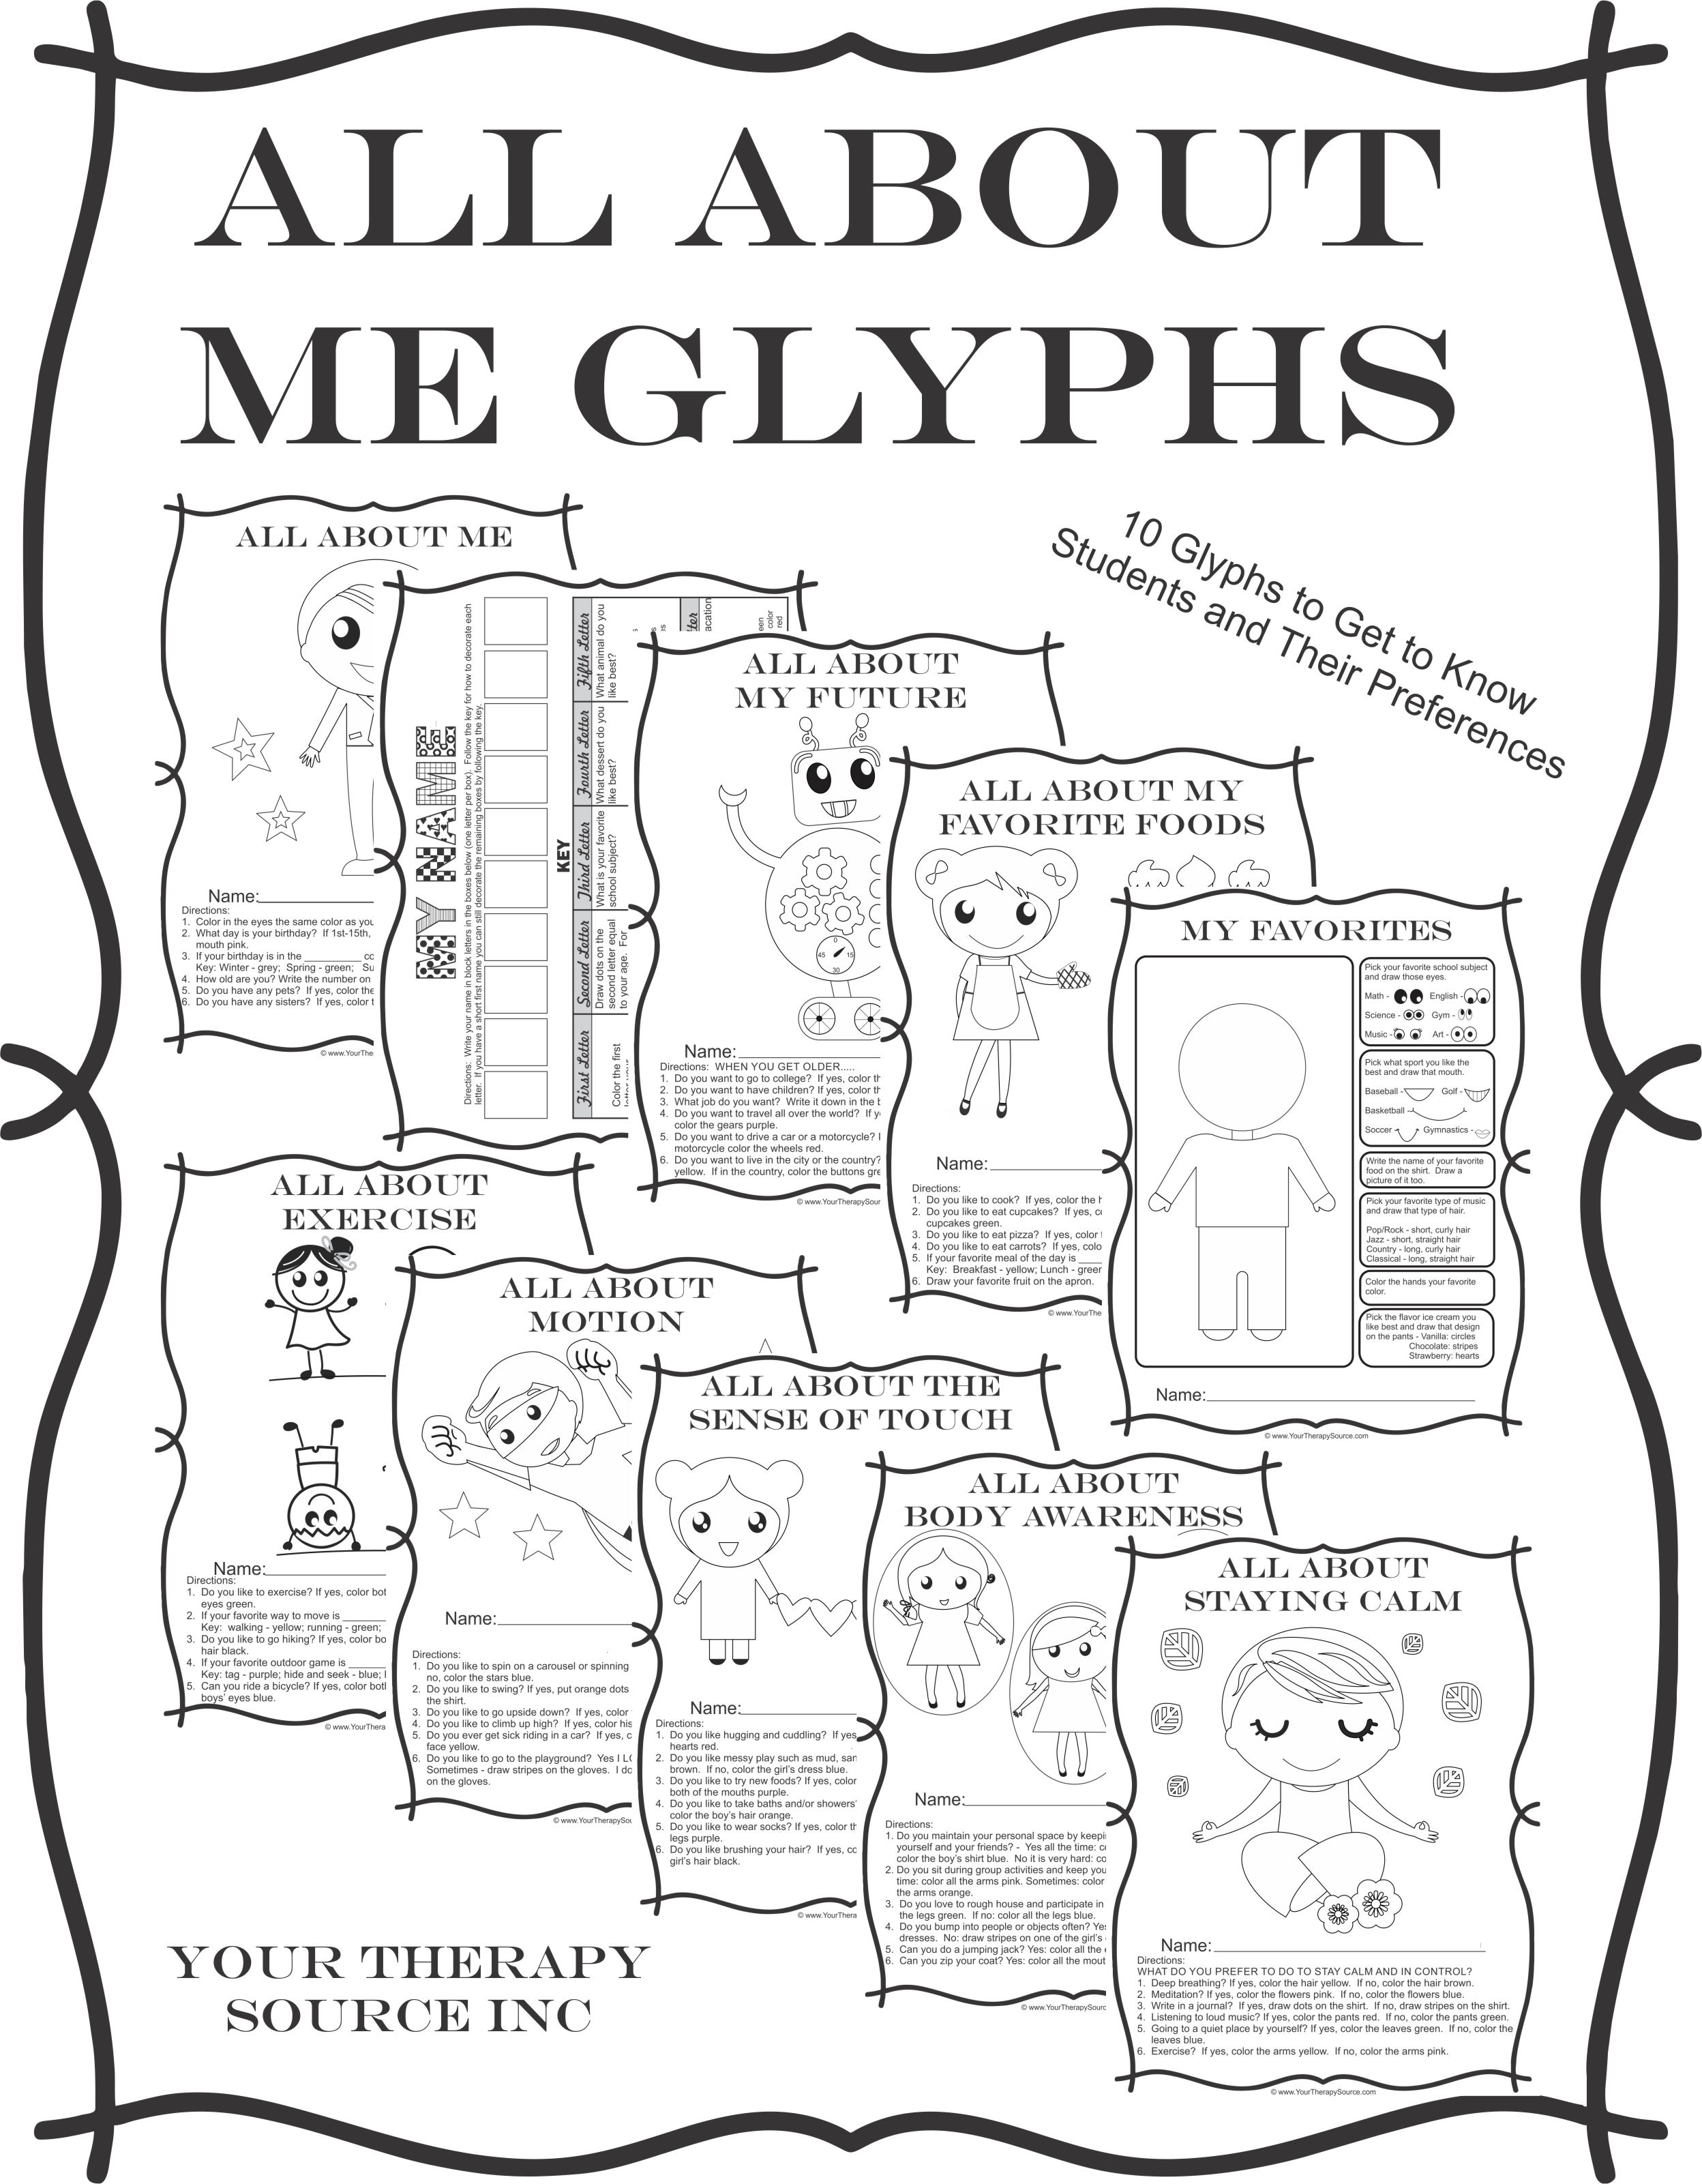 All About Me Glyphs